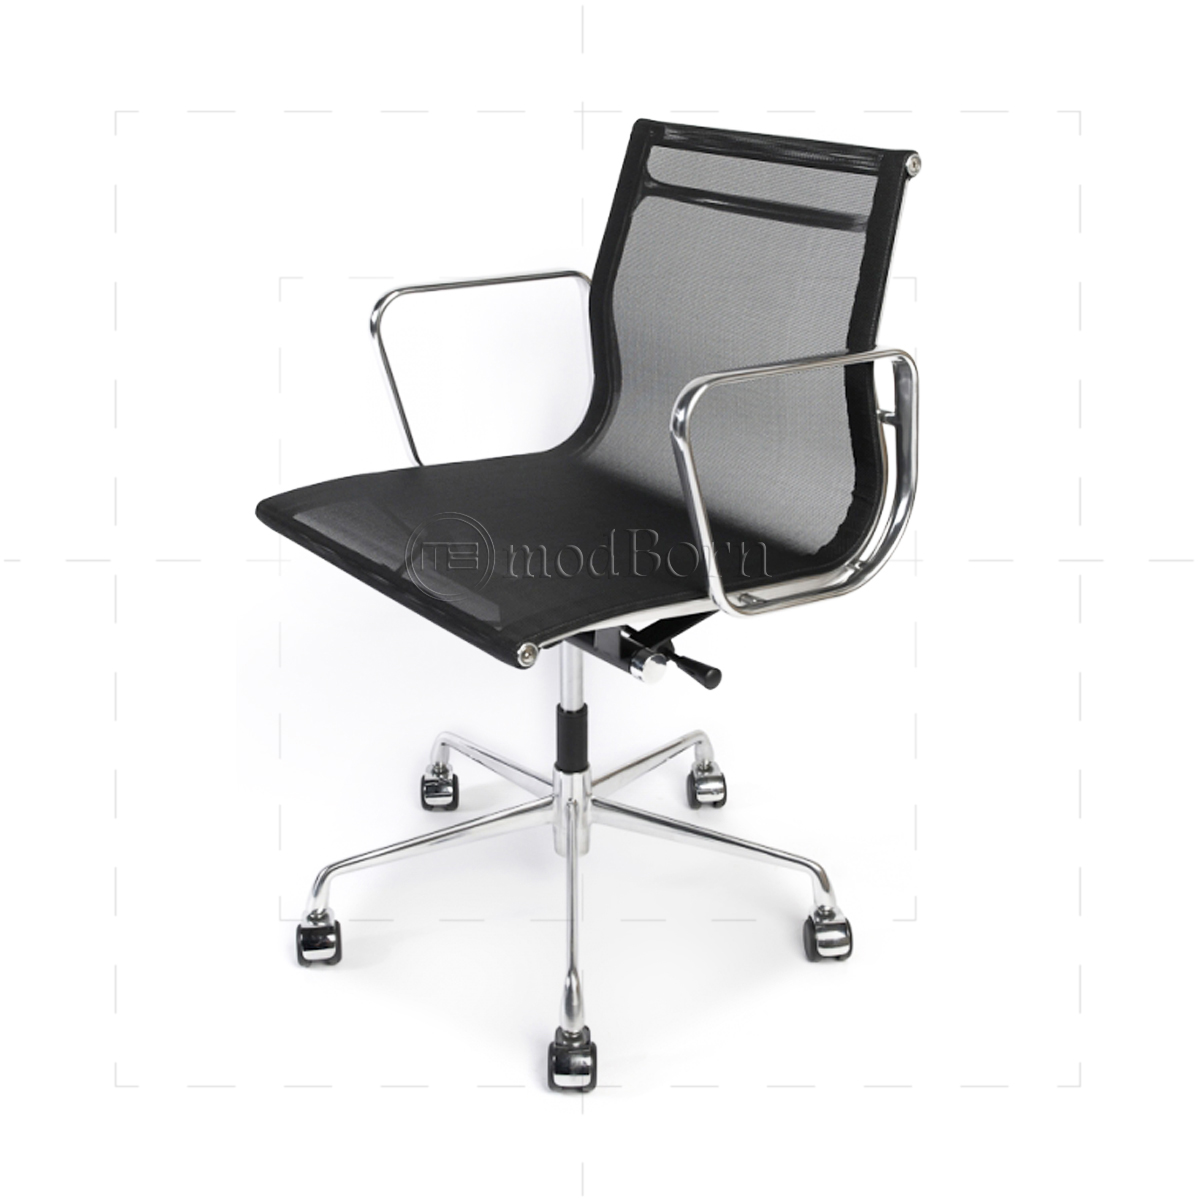 Leather reception chairs for home office - Ea108 Eames Style Office Mesh Chair Low Back Ribbed Black